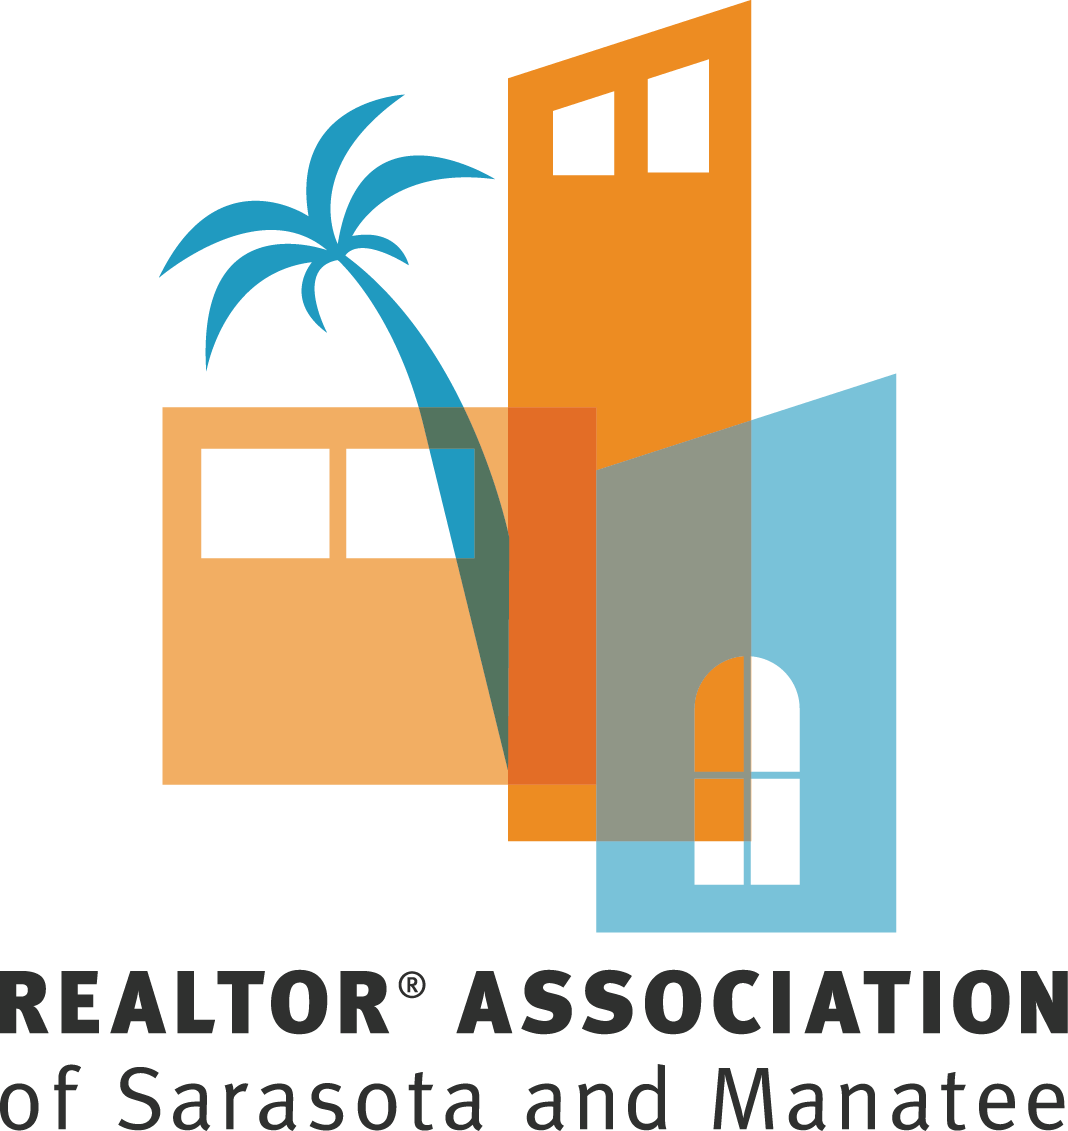 Realtor Association of Sarasota and Sarasota, FL